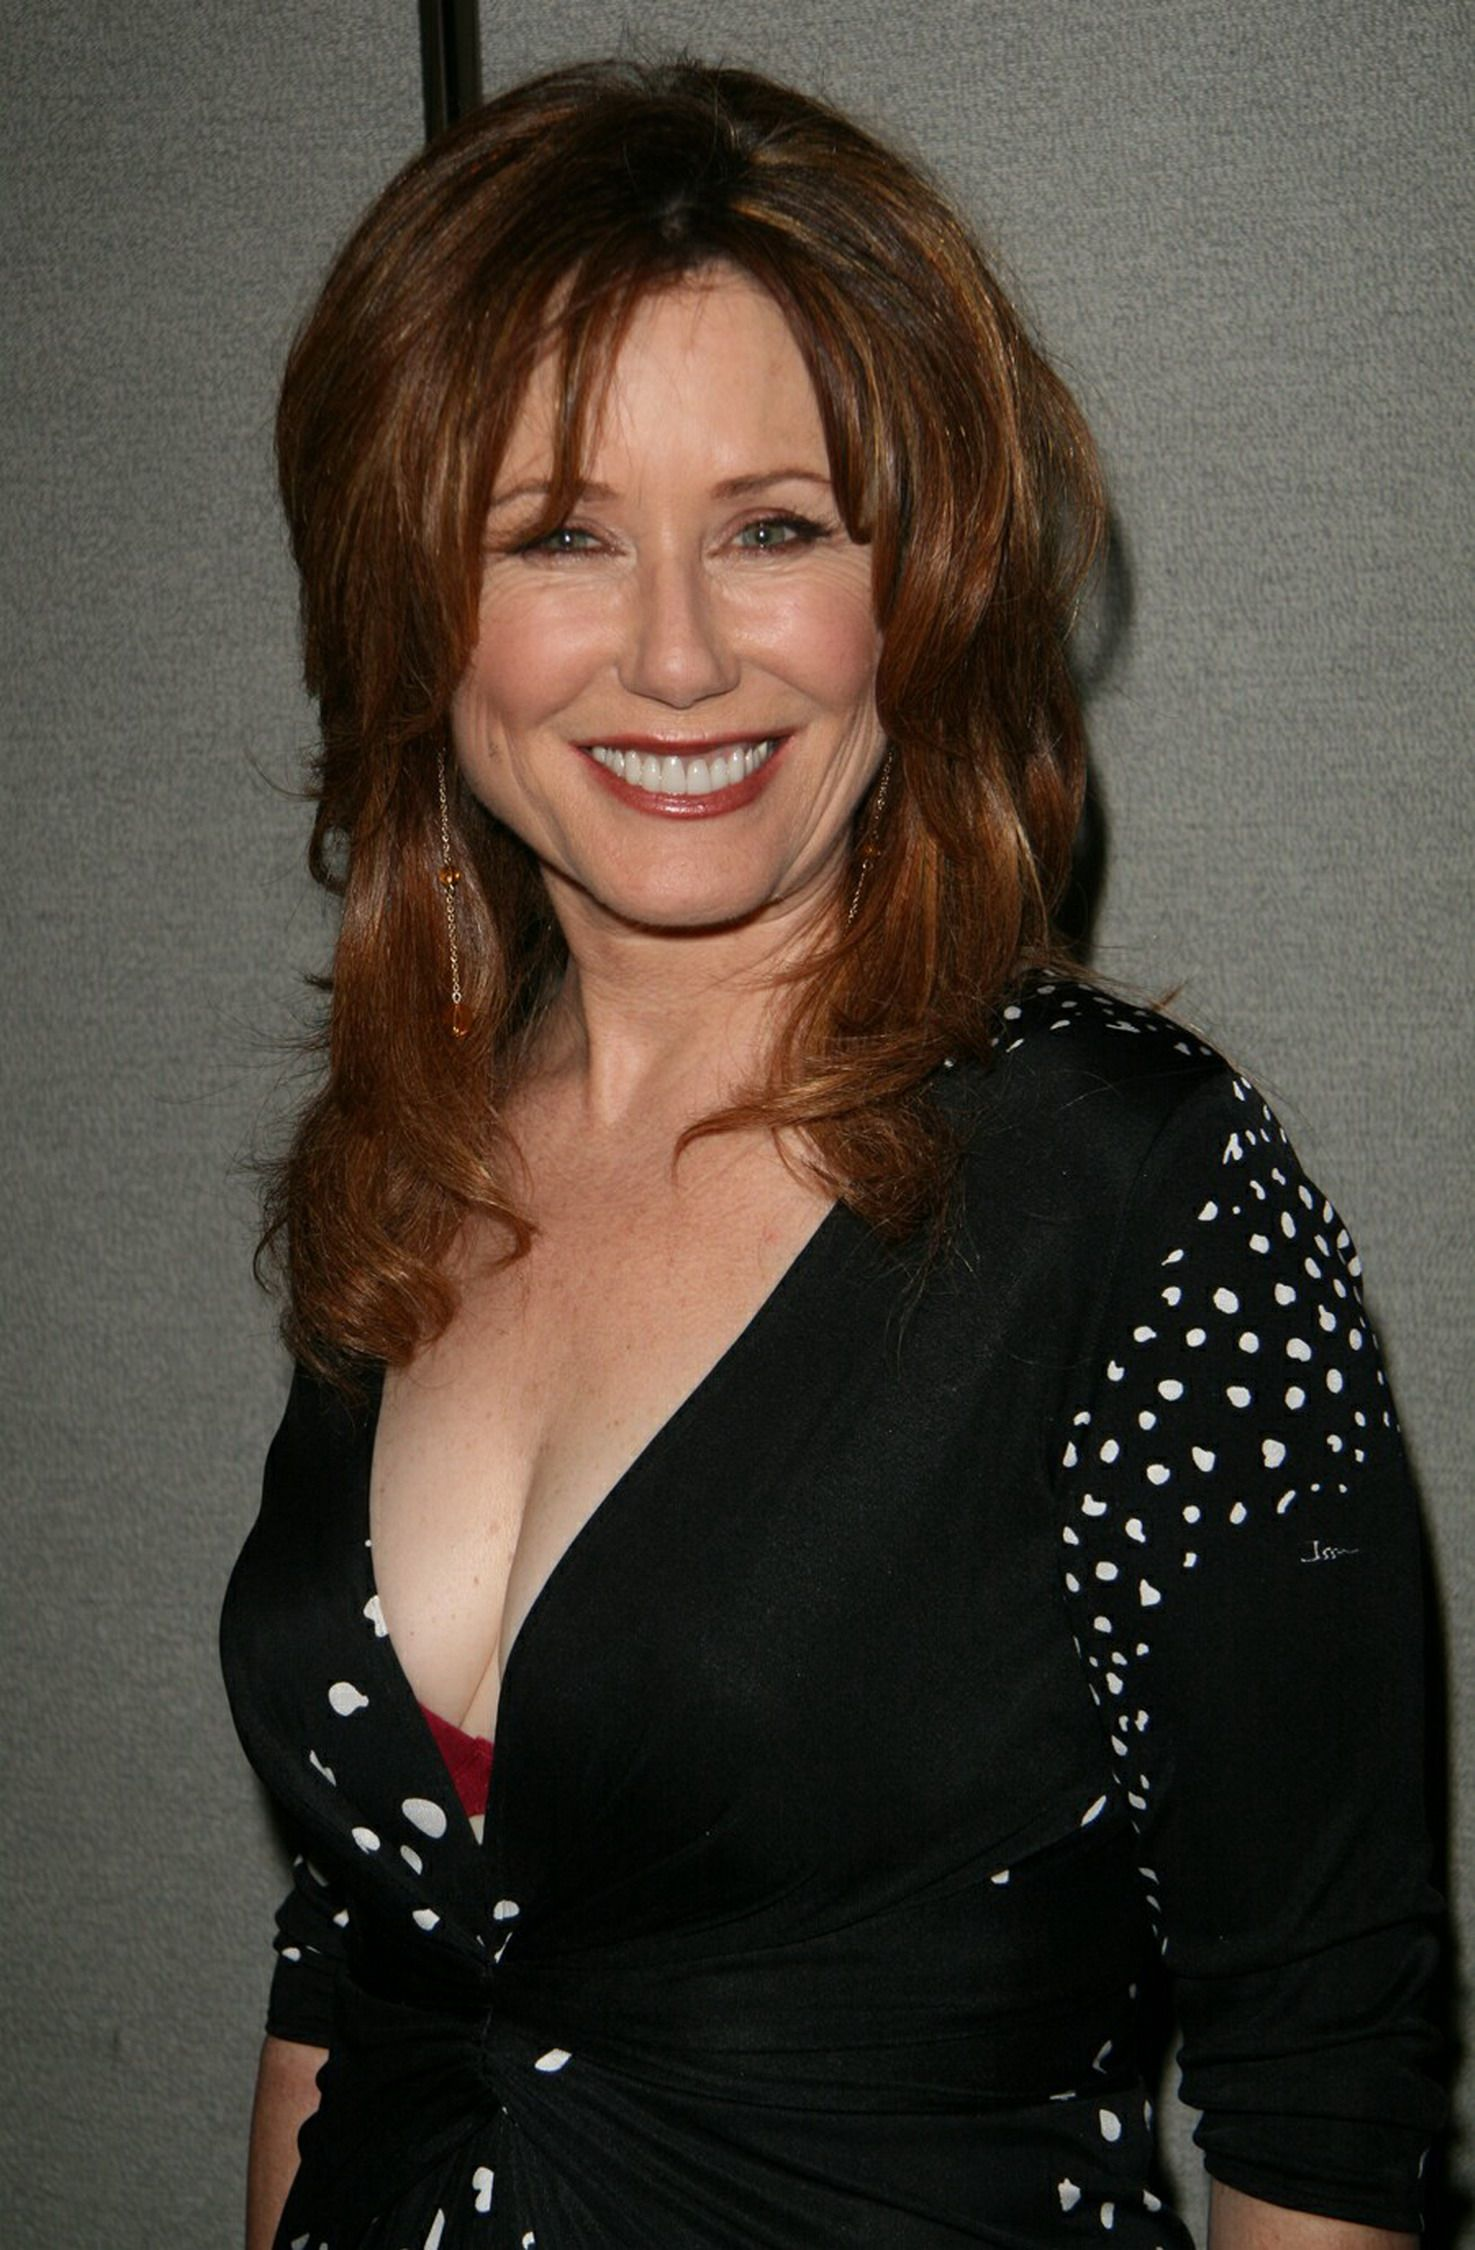 mary mcdonnell hot - google search | alluring women | pinterest